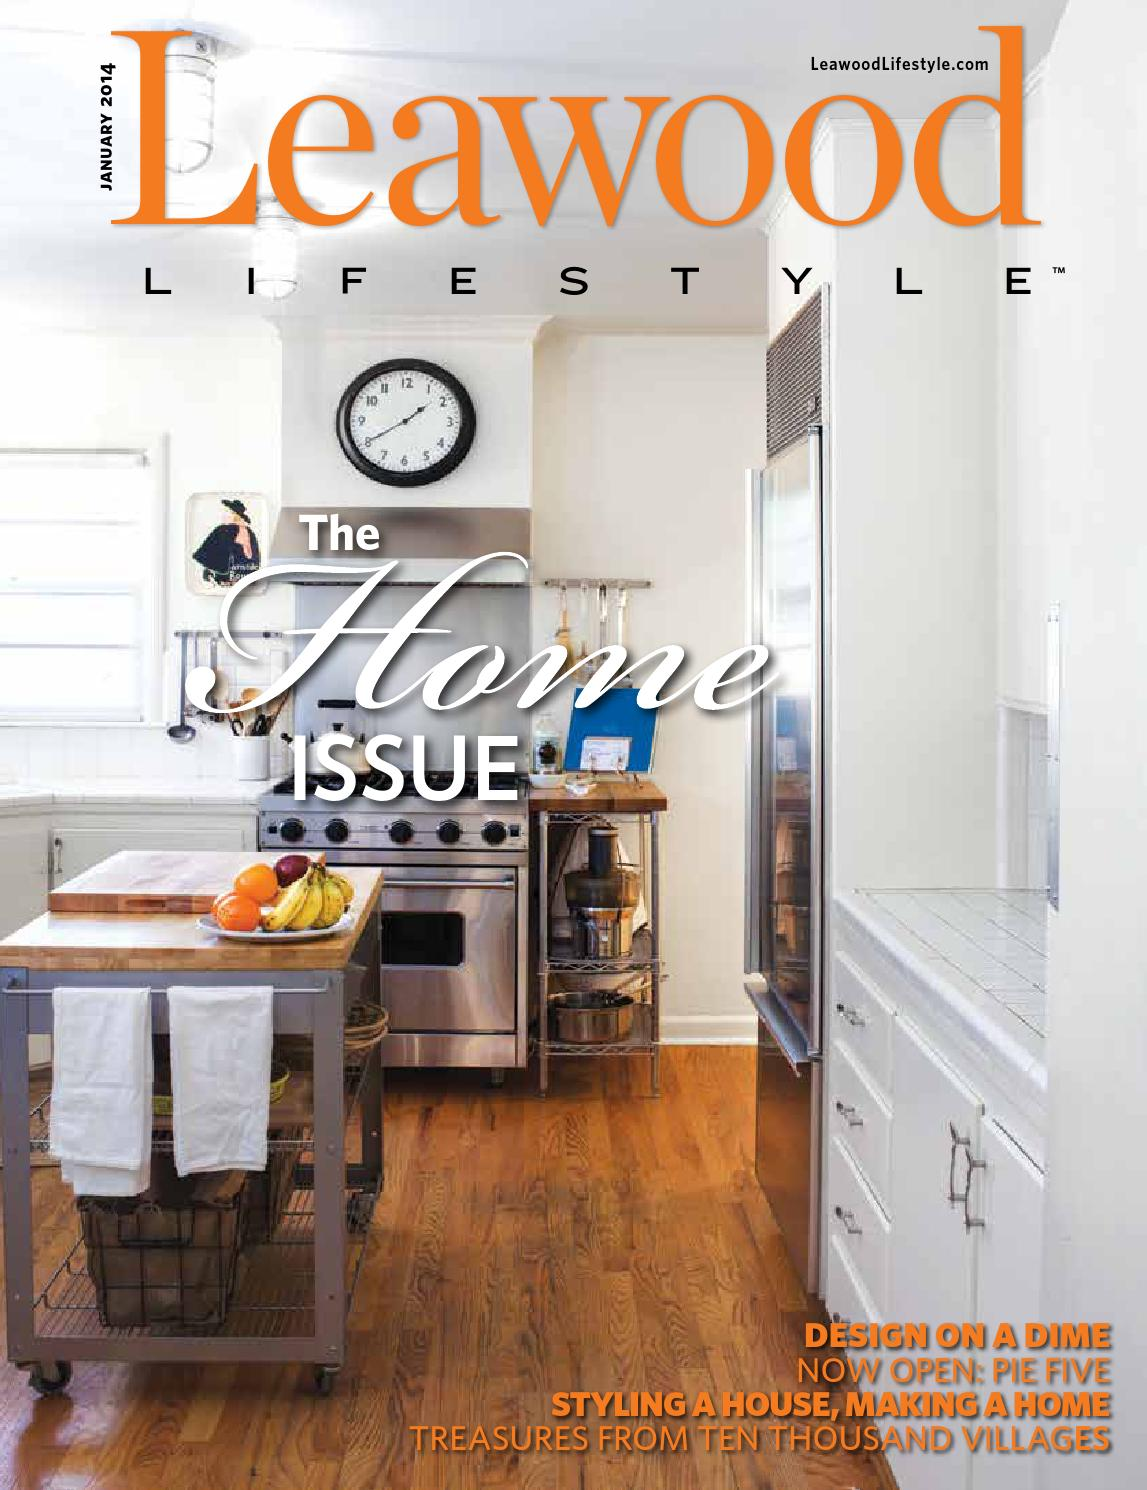 Leawood Lifestyle January 2014 by Lifestyle Publications - issuu